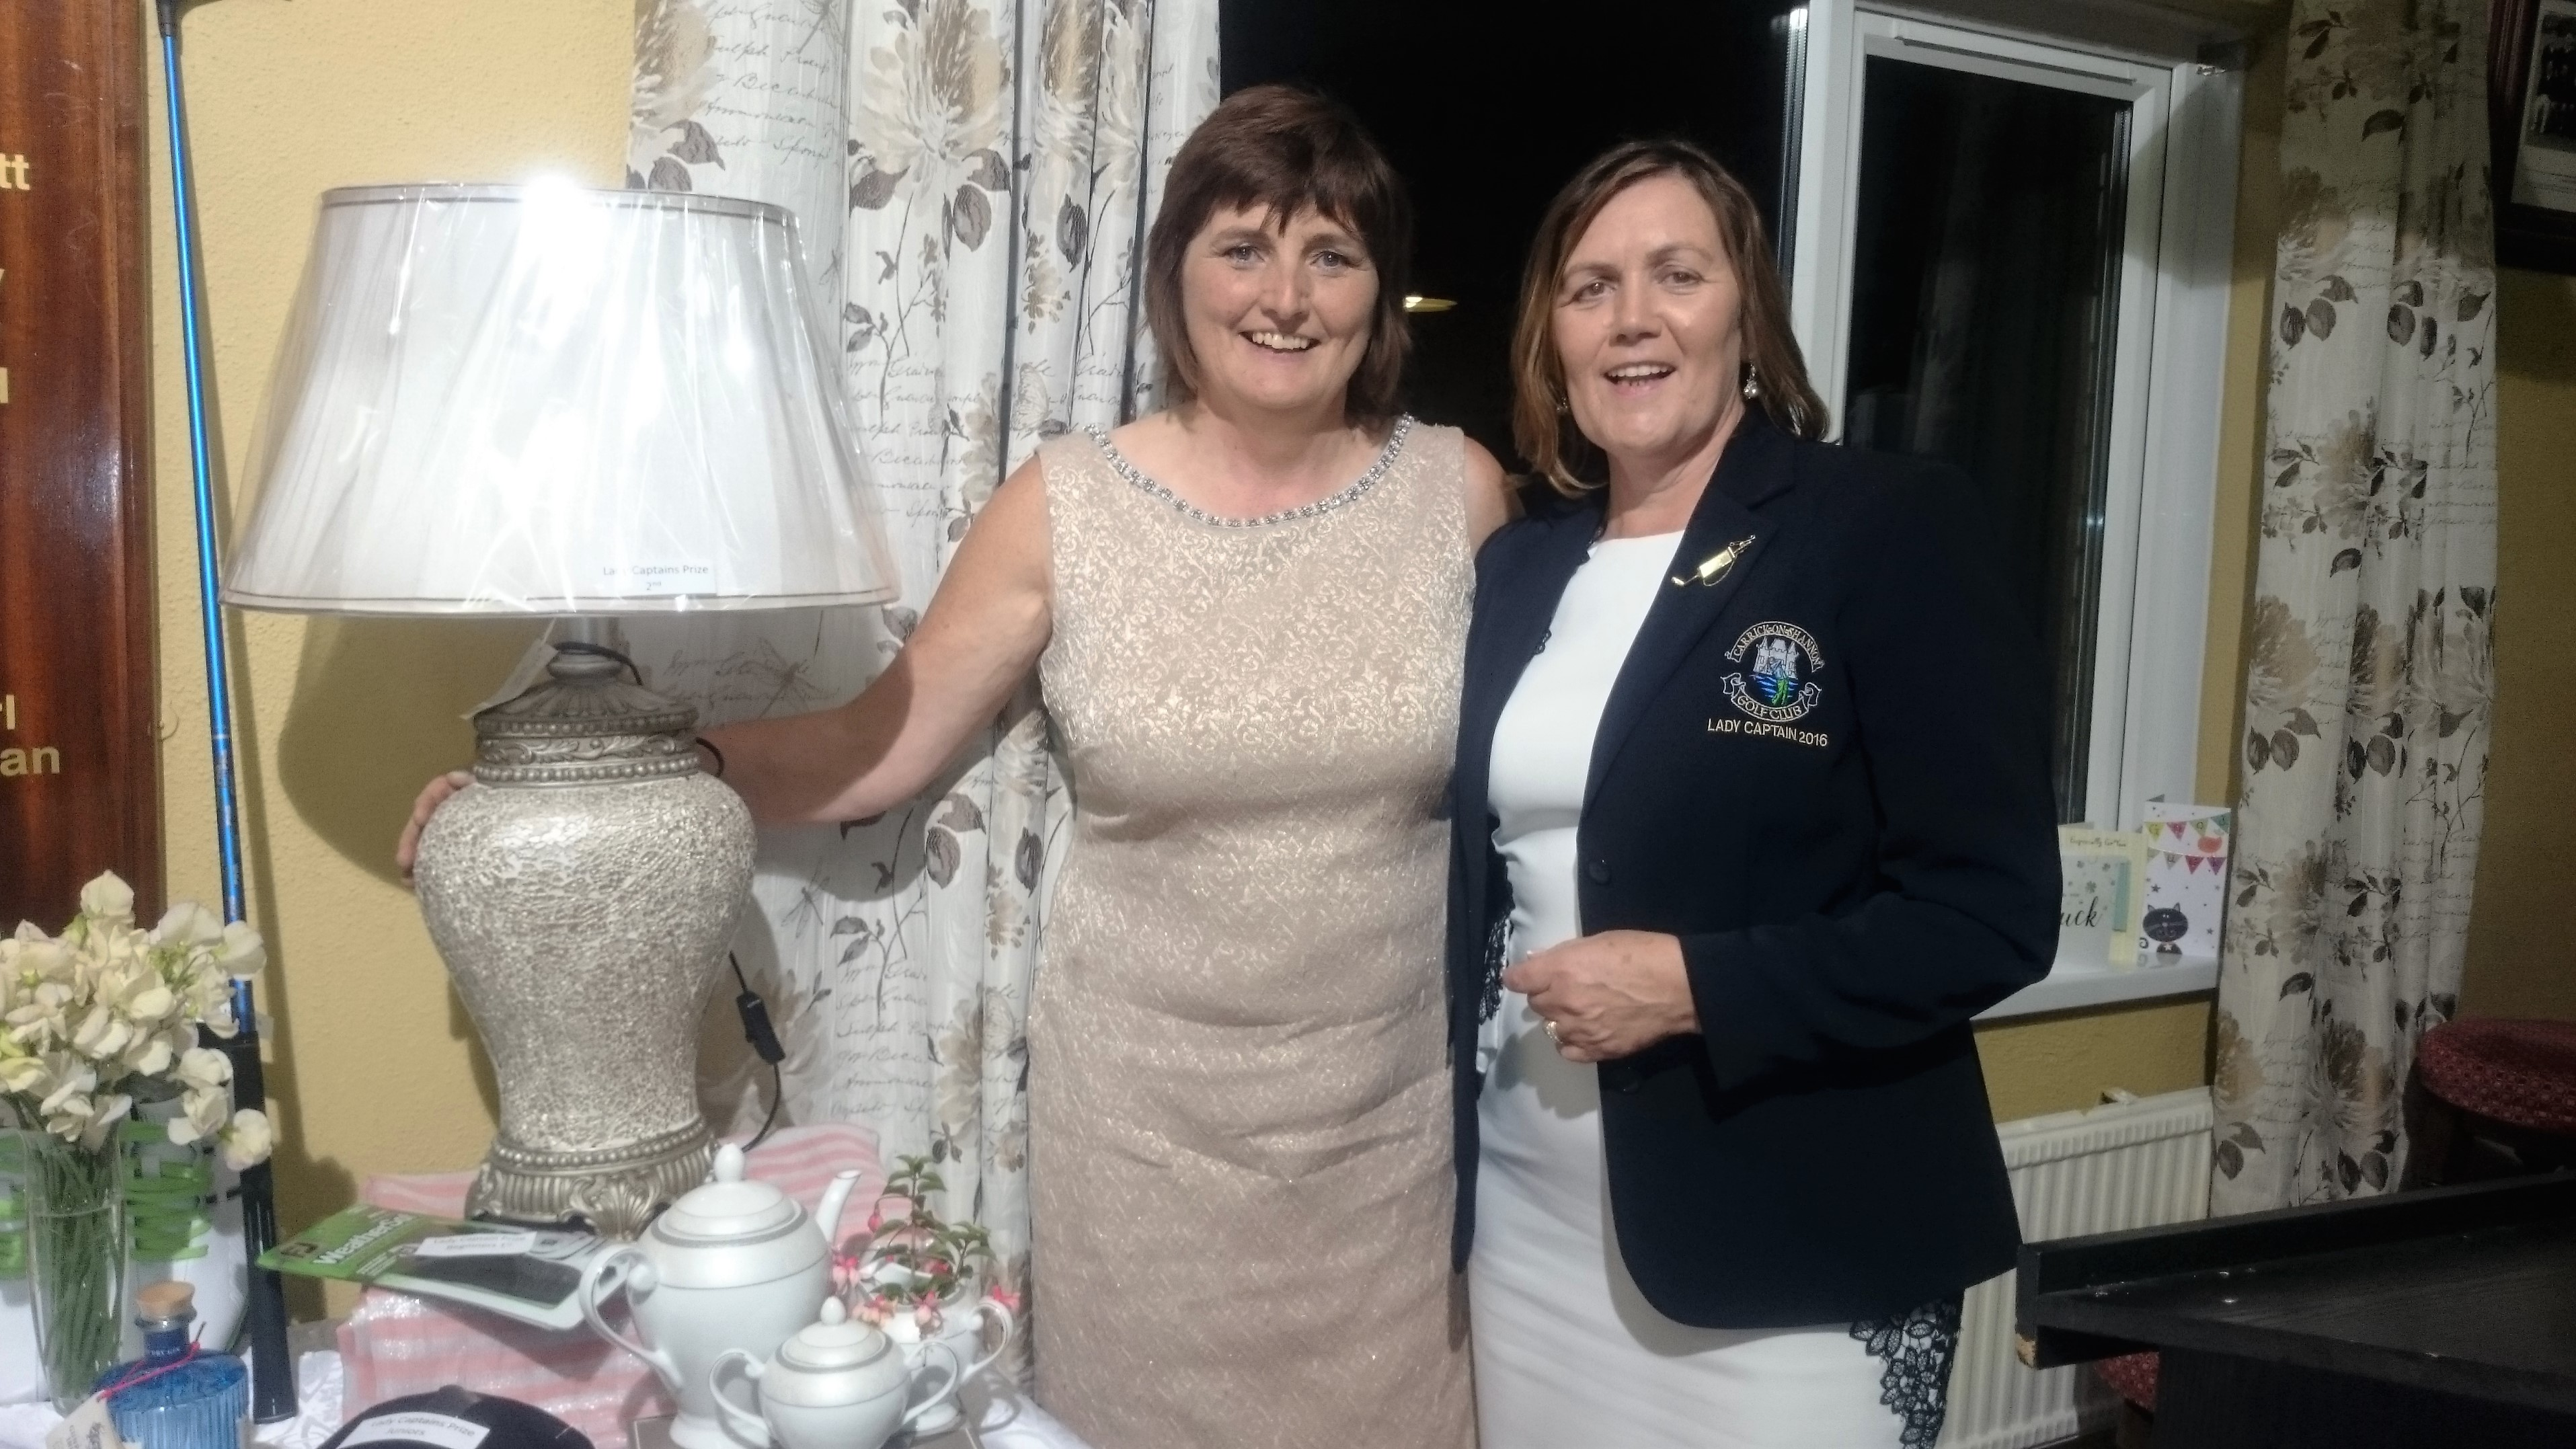 LADY CAPTAINS DAY: Dolores Mulvey(Second), Lady Captain Noeleen Moffatt